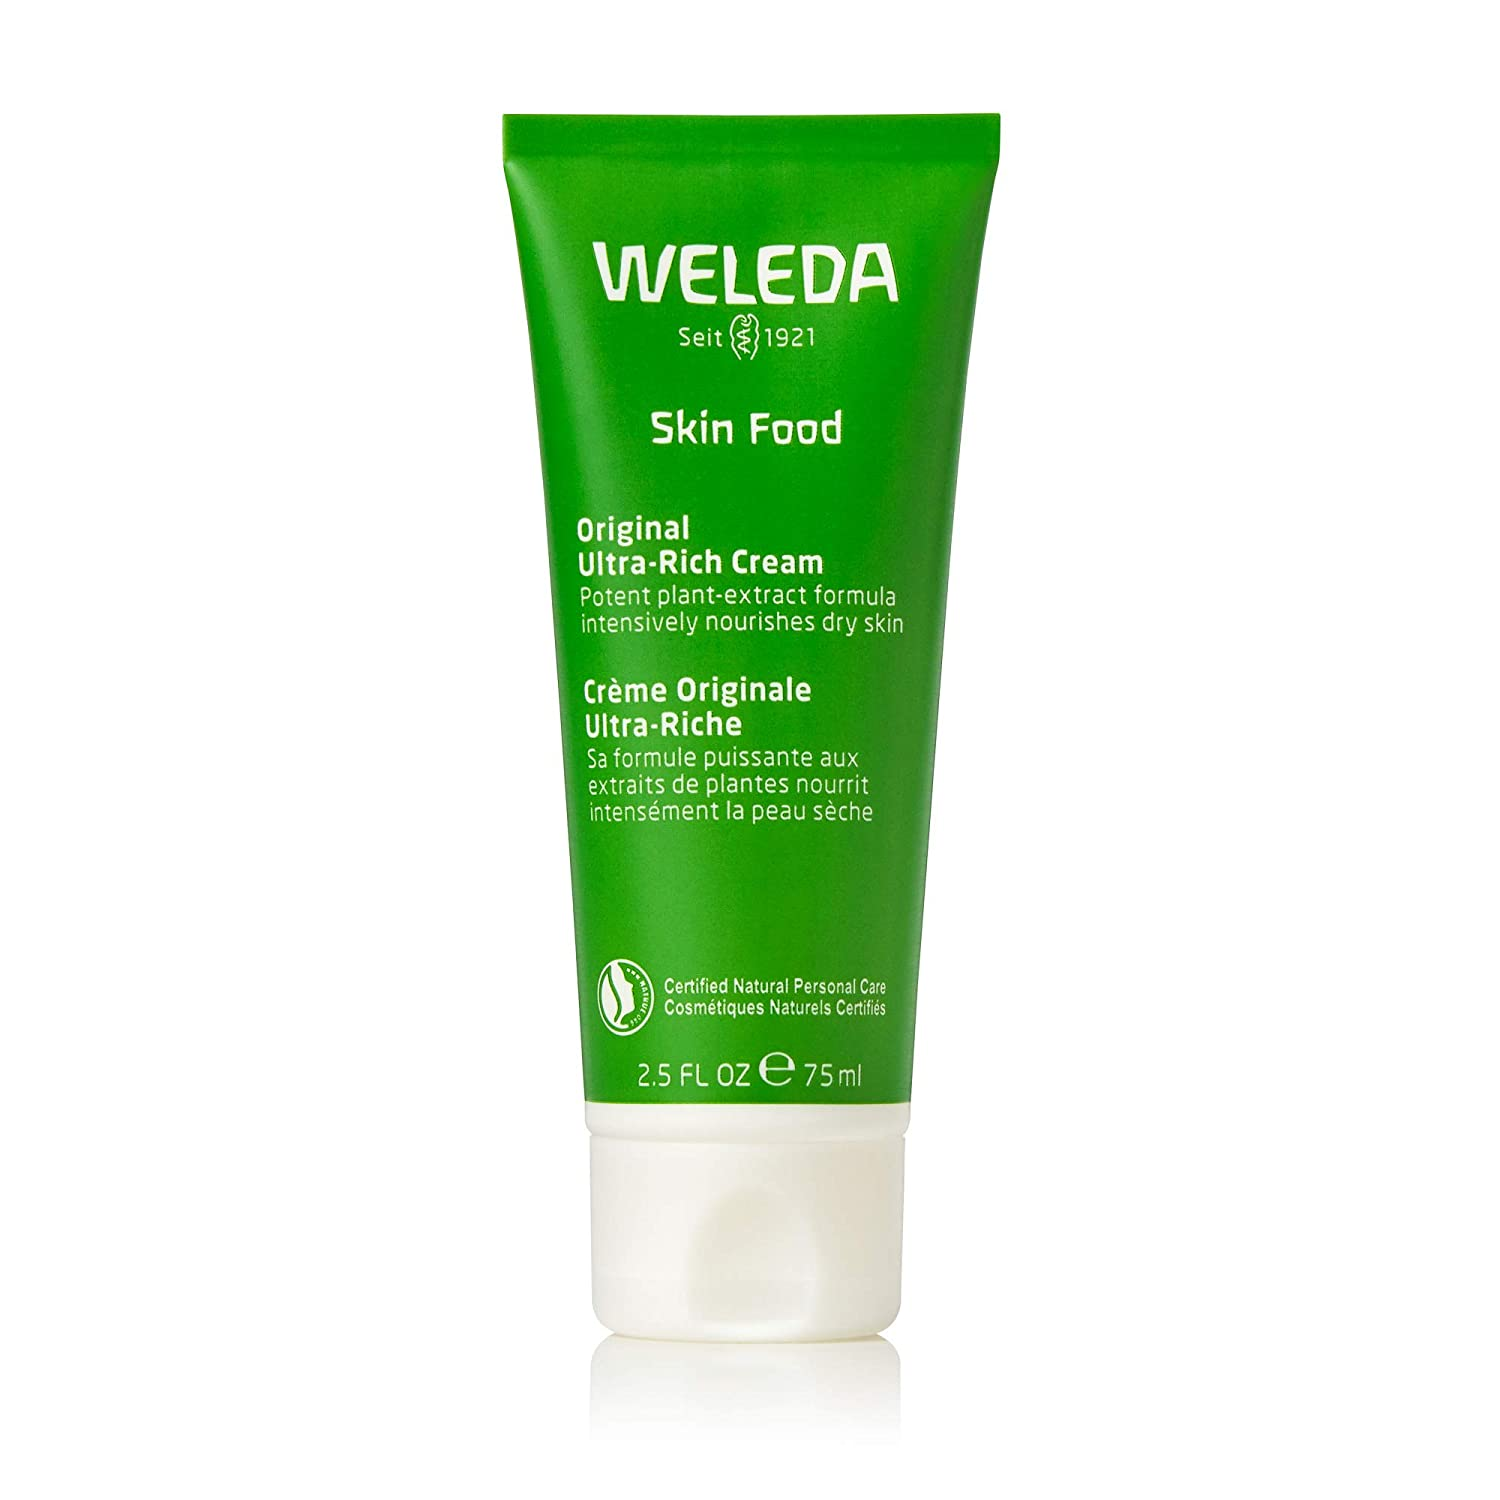 Skin Food Original Ultra-Rich Body Cream by Weleda